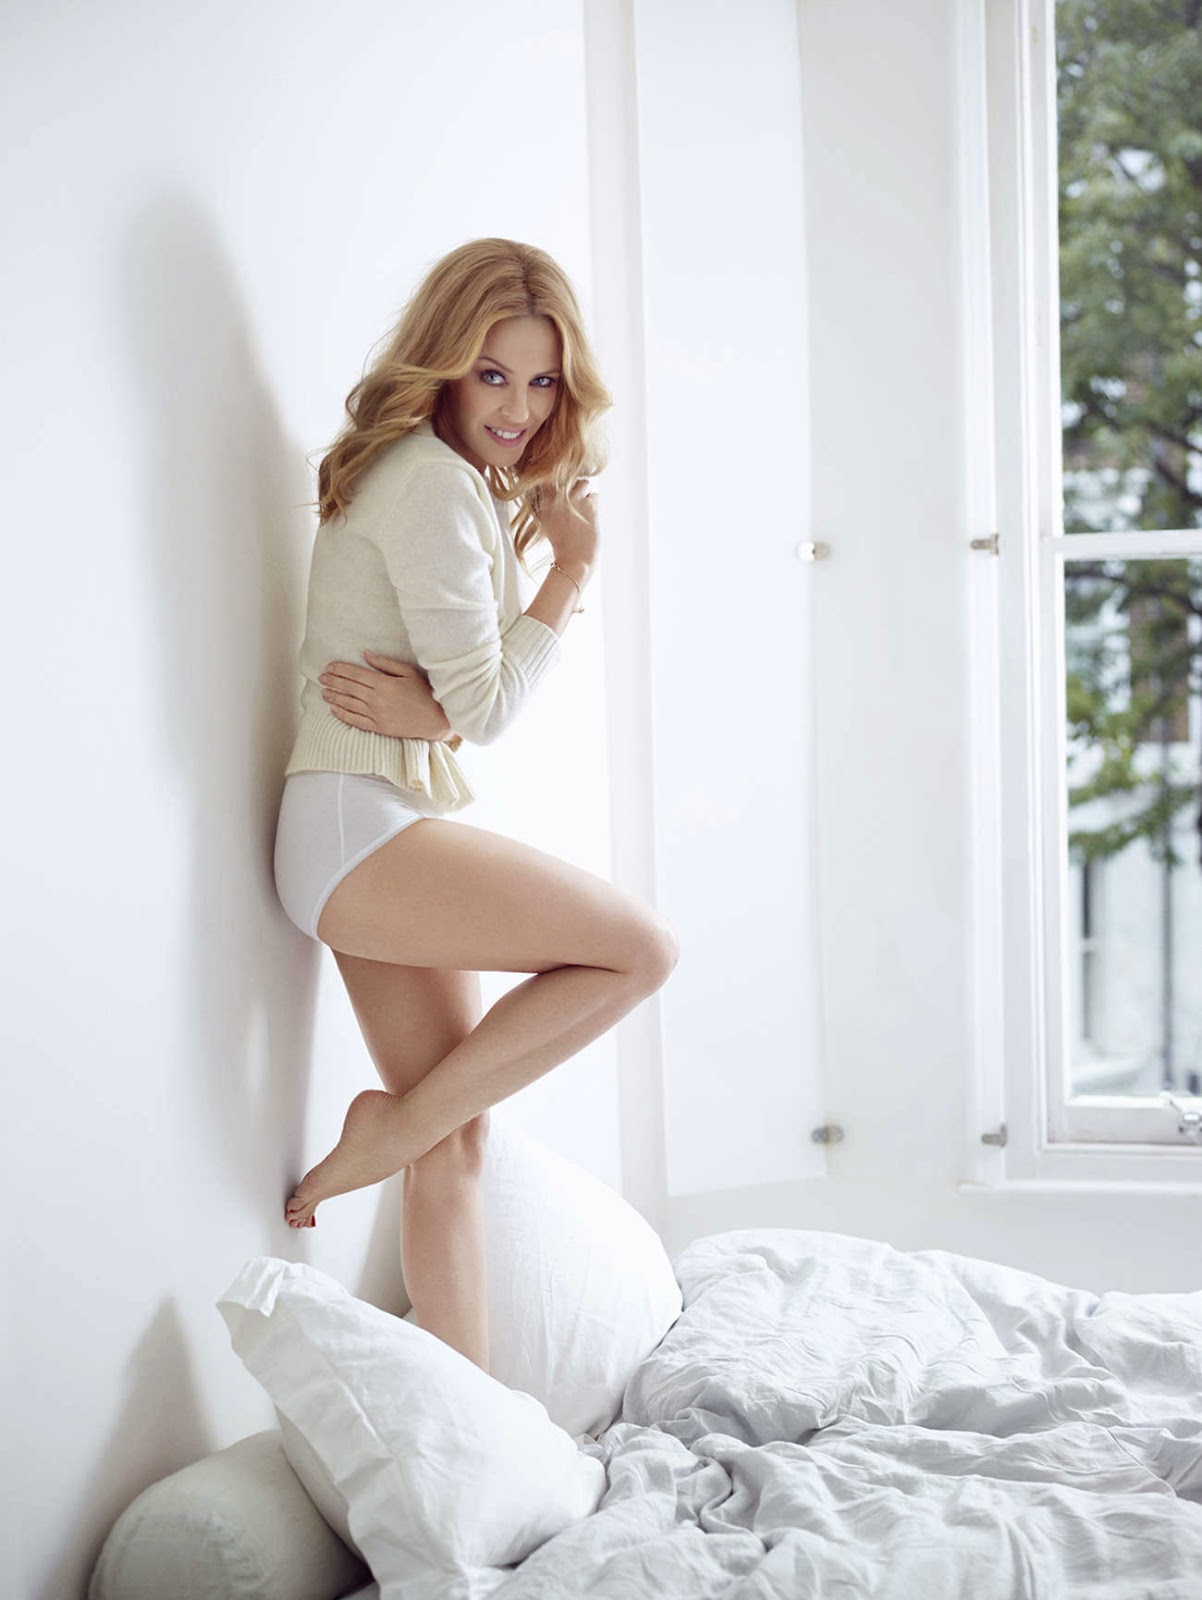 Kylie Minogue pose in Sloggi Underwear for the Fall/Winter 2014 Campaign